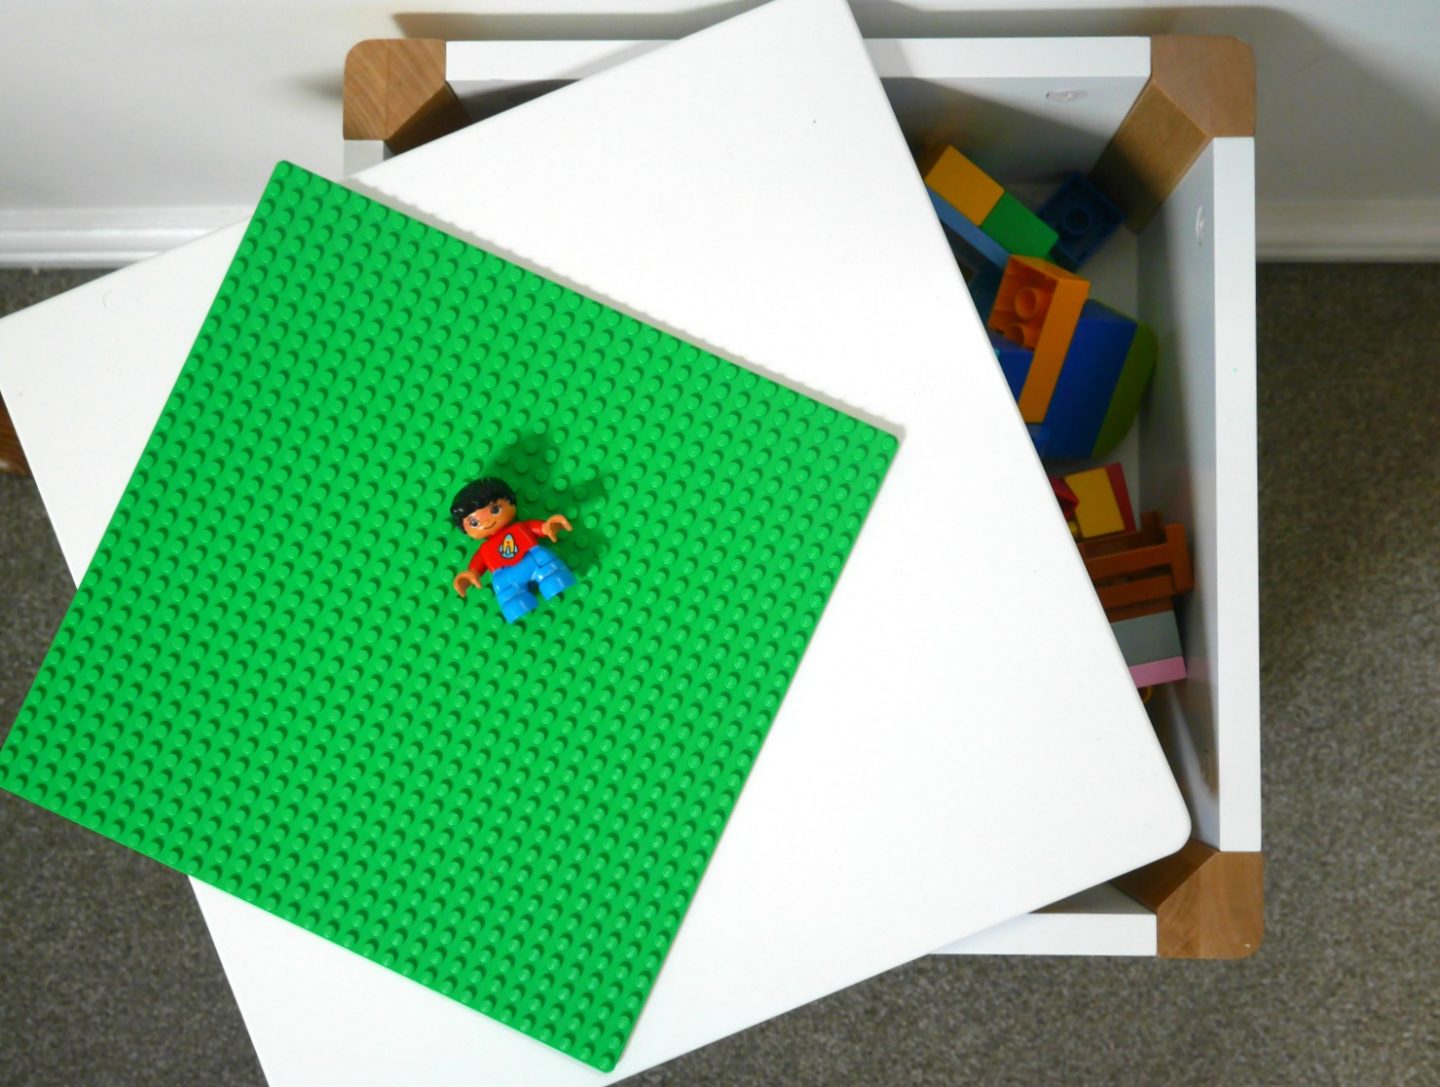 Making a Lego Duplo table with GLTC Potter storage stool